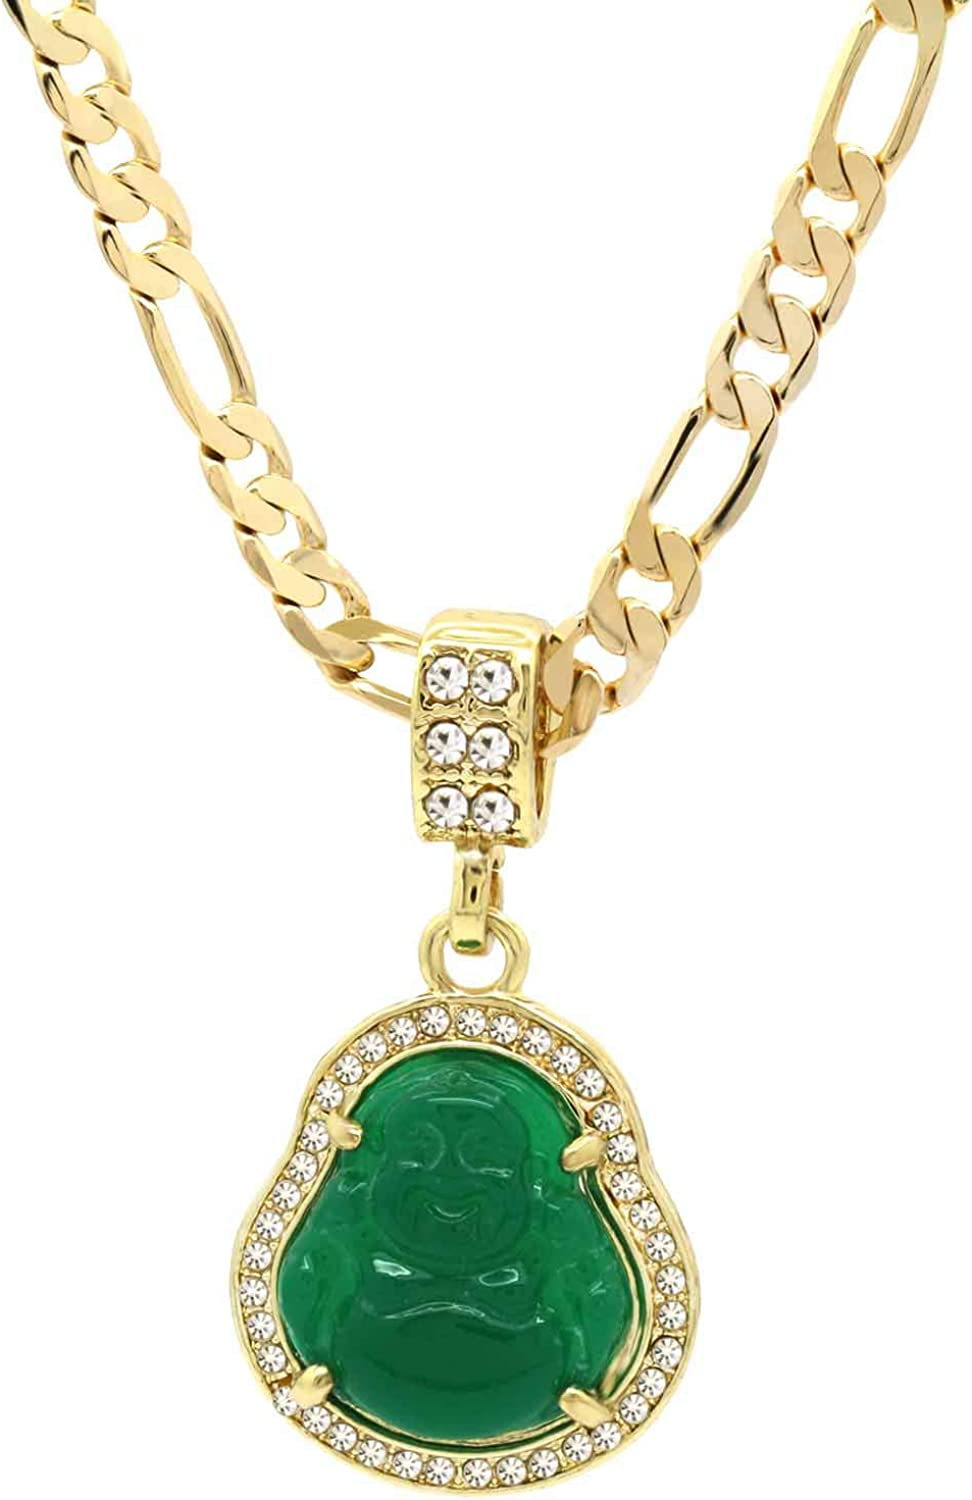 L & L Nation 14K Gold Plated High Fashion Lucky Smiling Buddha Charm Pendant Green Red White Black Blue On Figaro Chain